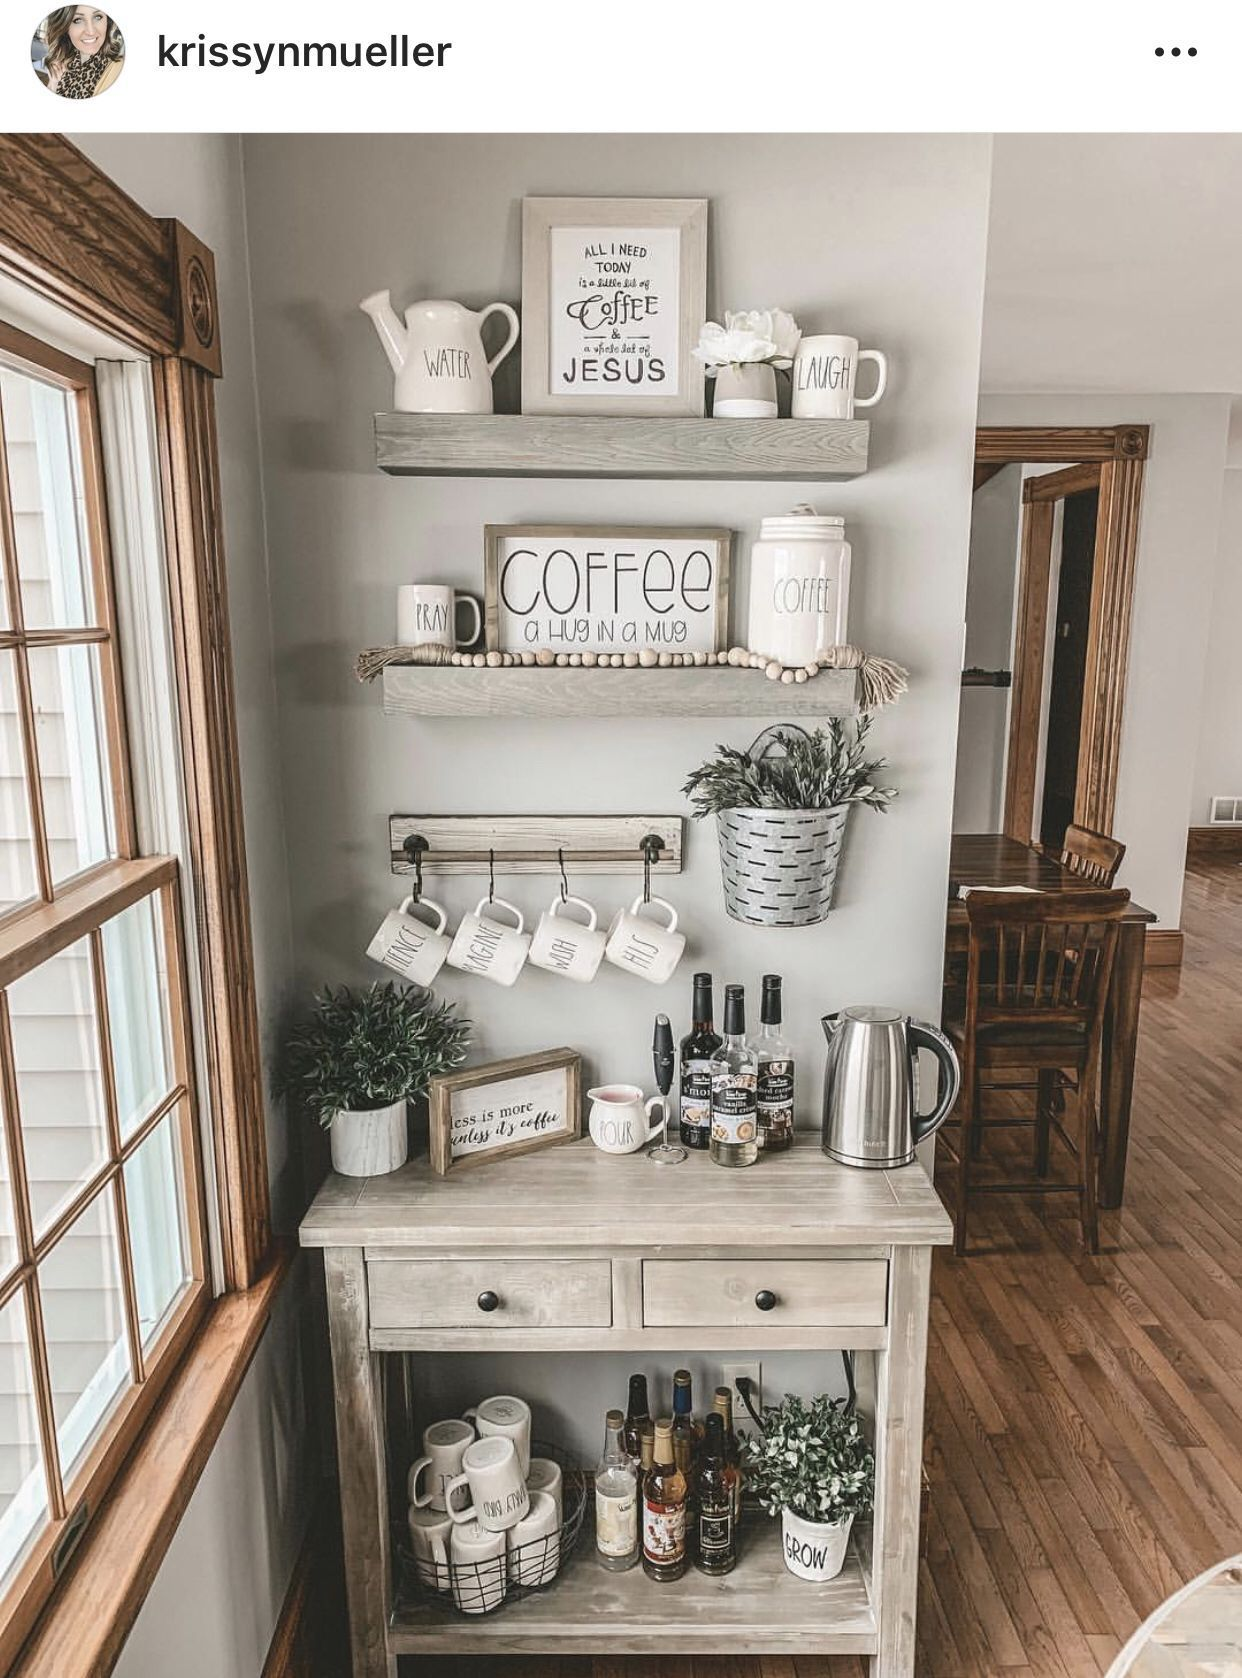 Photo of ashley anderson homecoffeestations #coffeestationkitchen #coffeebarsinkitchen #i …